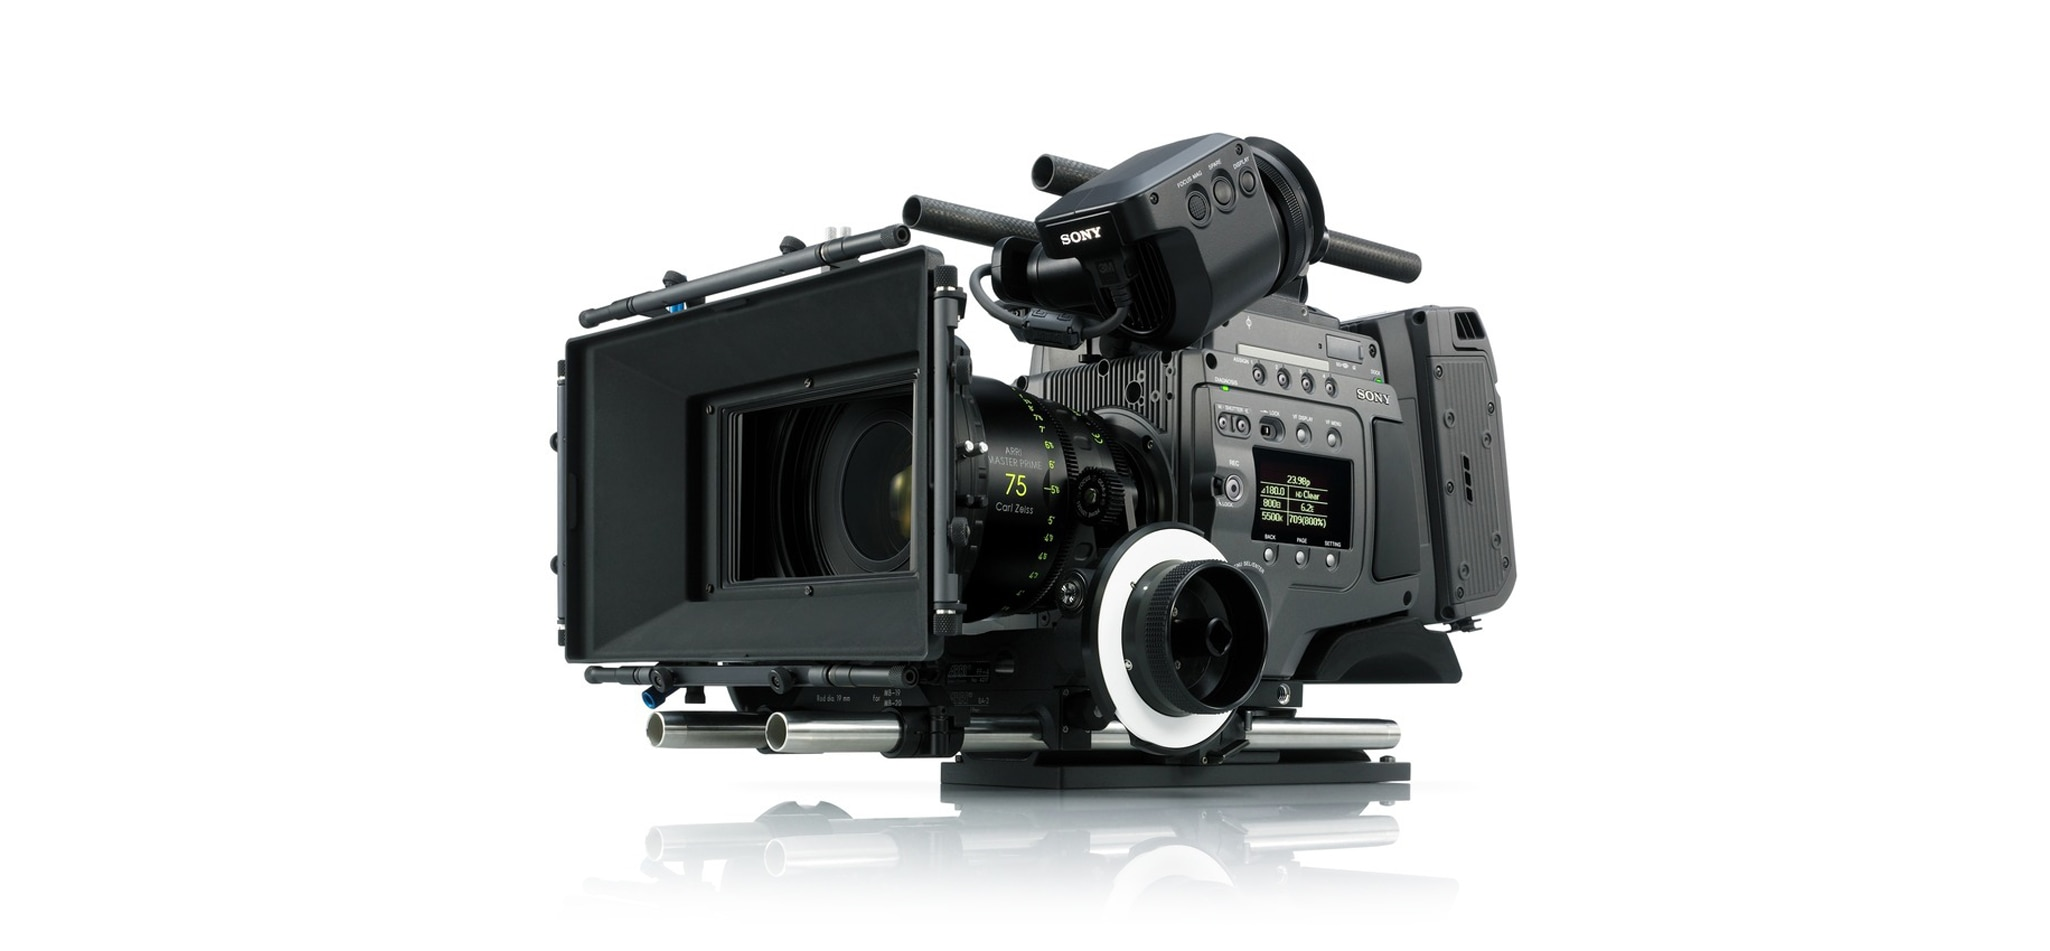 Sony's F65 CineAlta camera